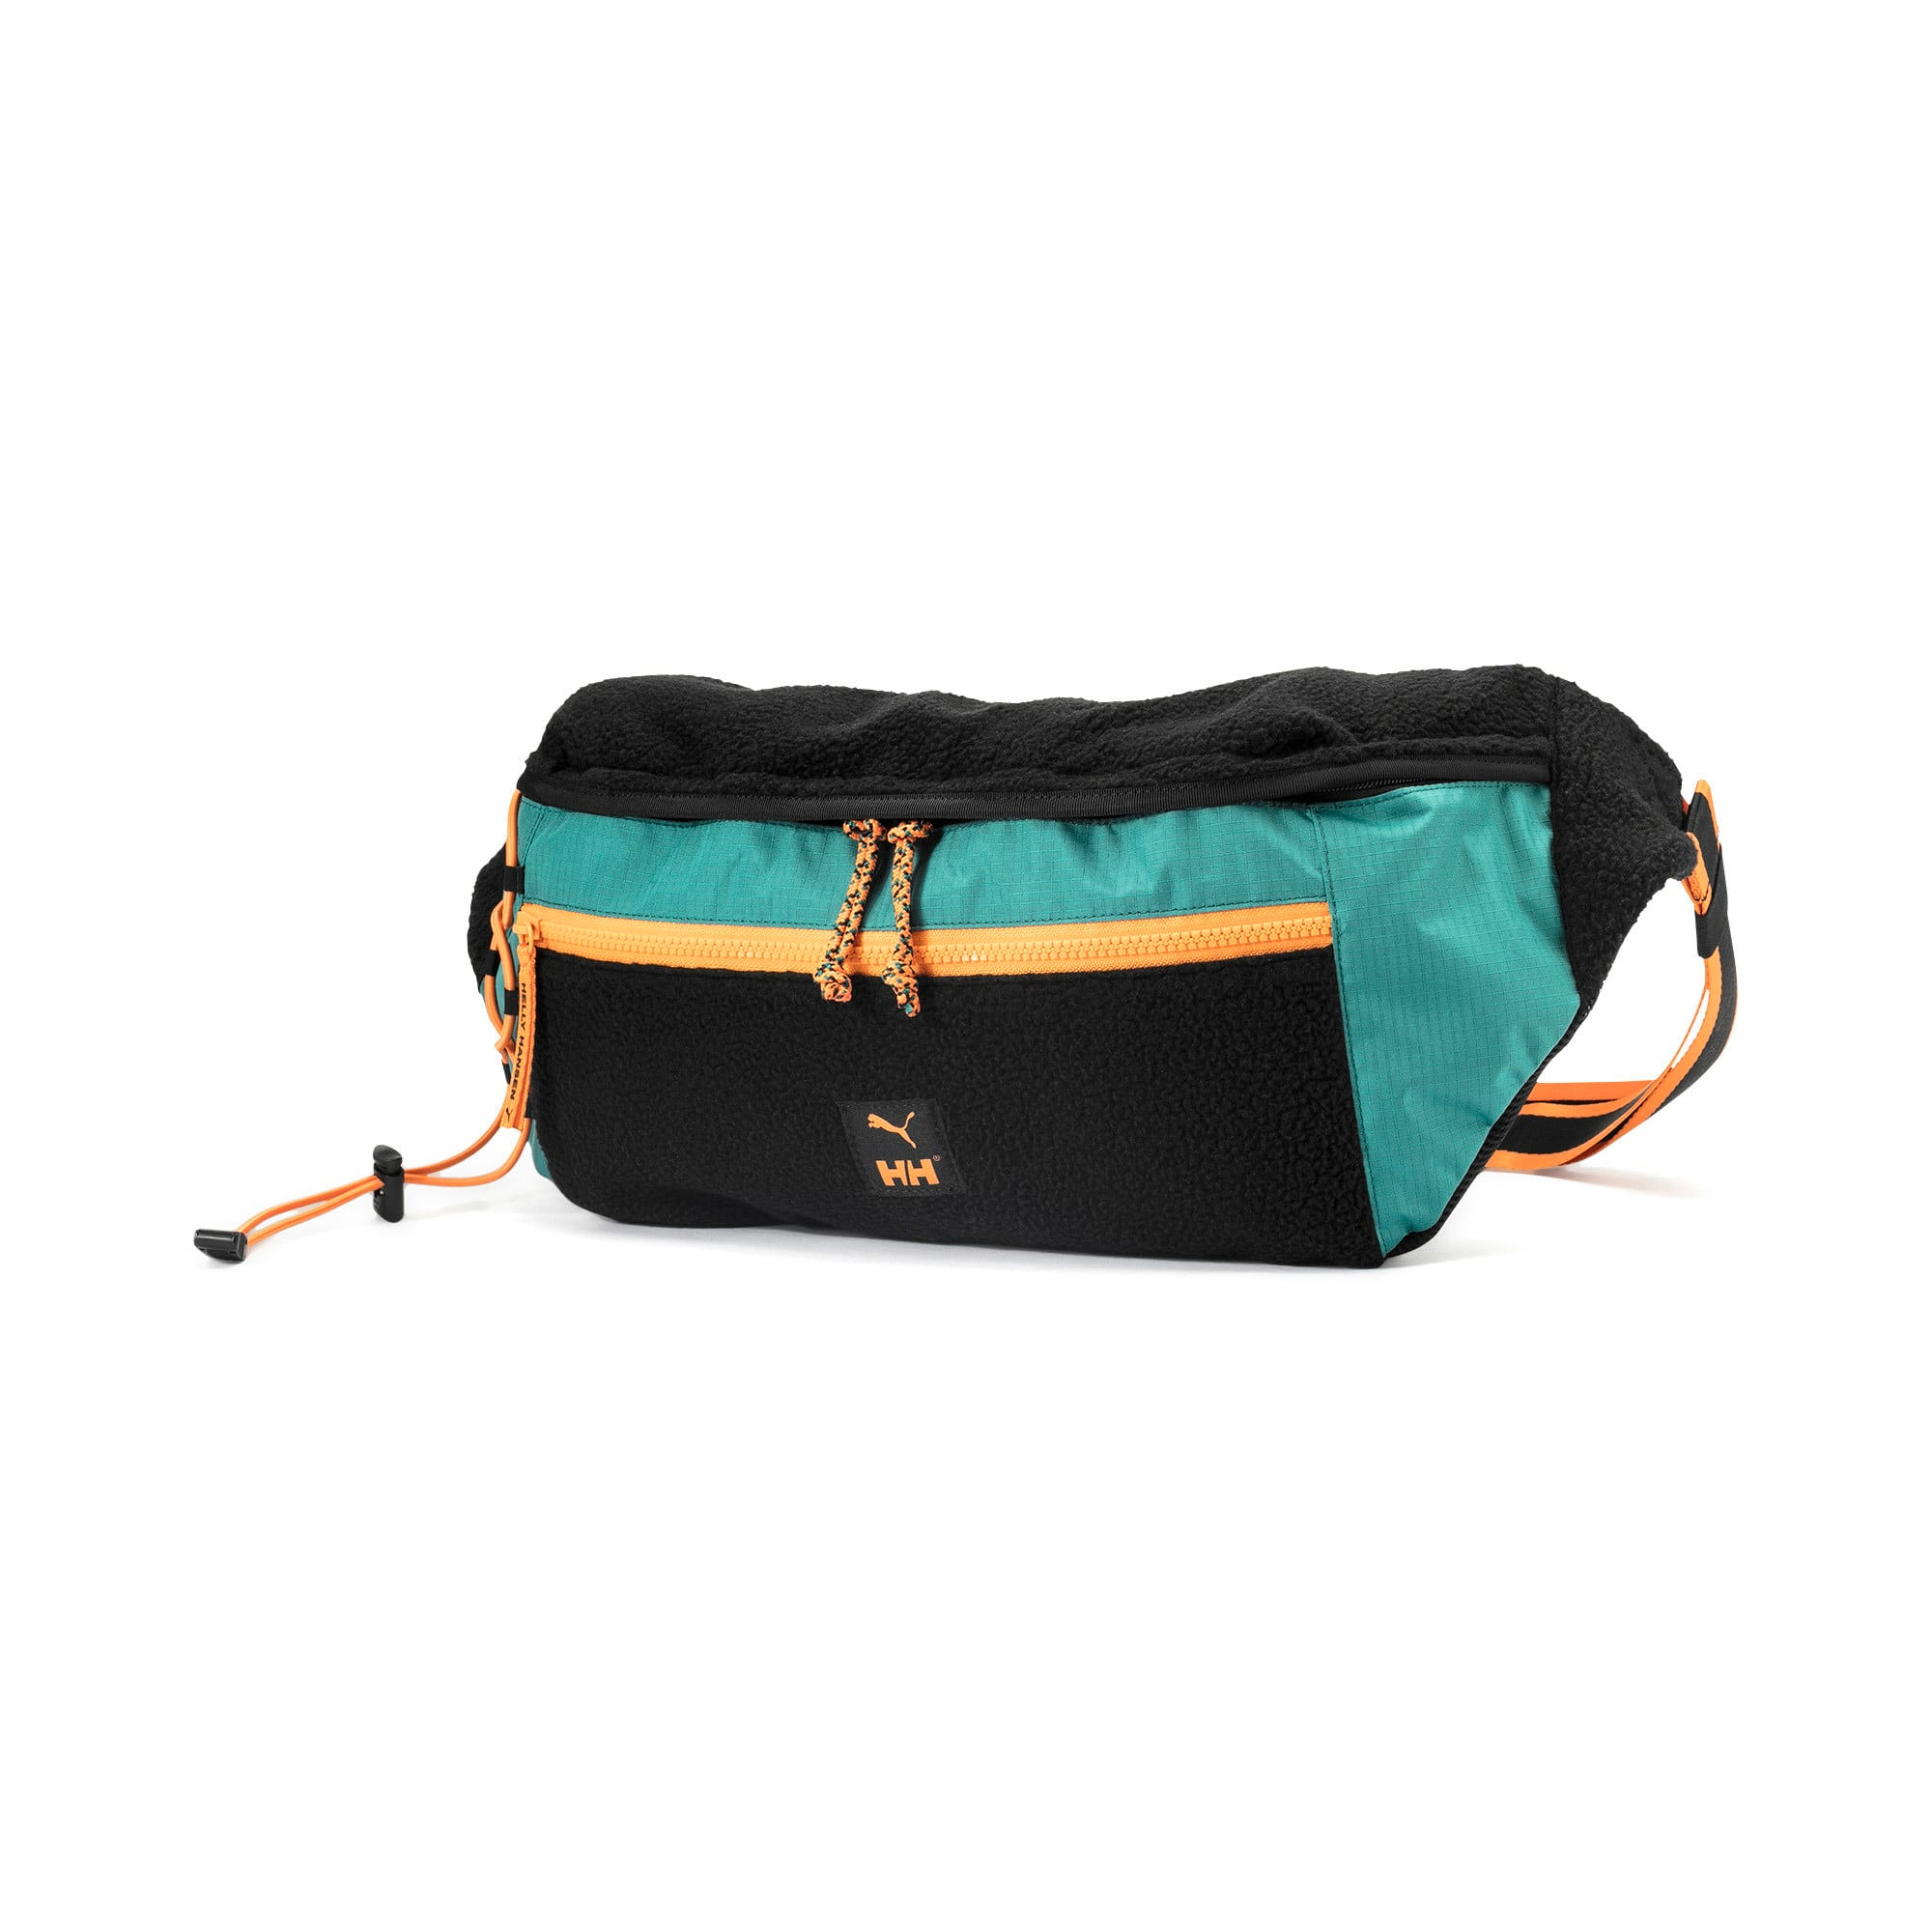 Thumbnail 1 of PUMA x HELLY HANSEN Oversized Gürteltasche, Puma Black-Teal Green, medium